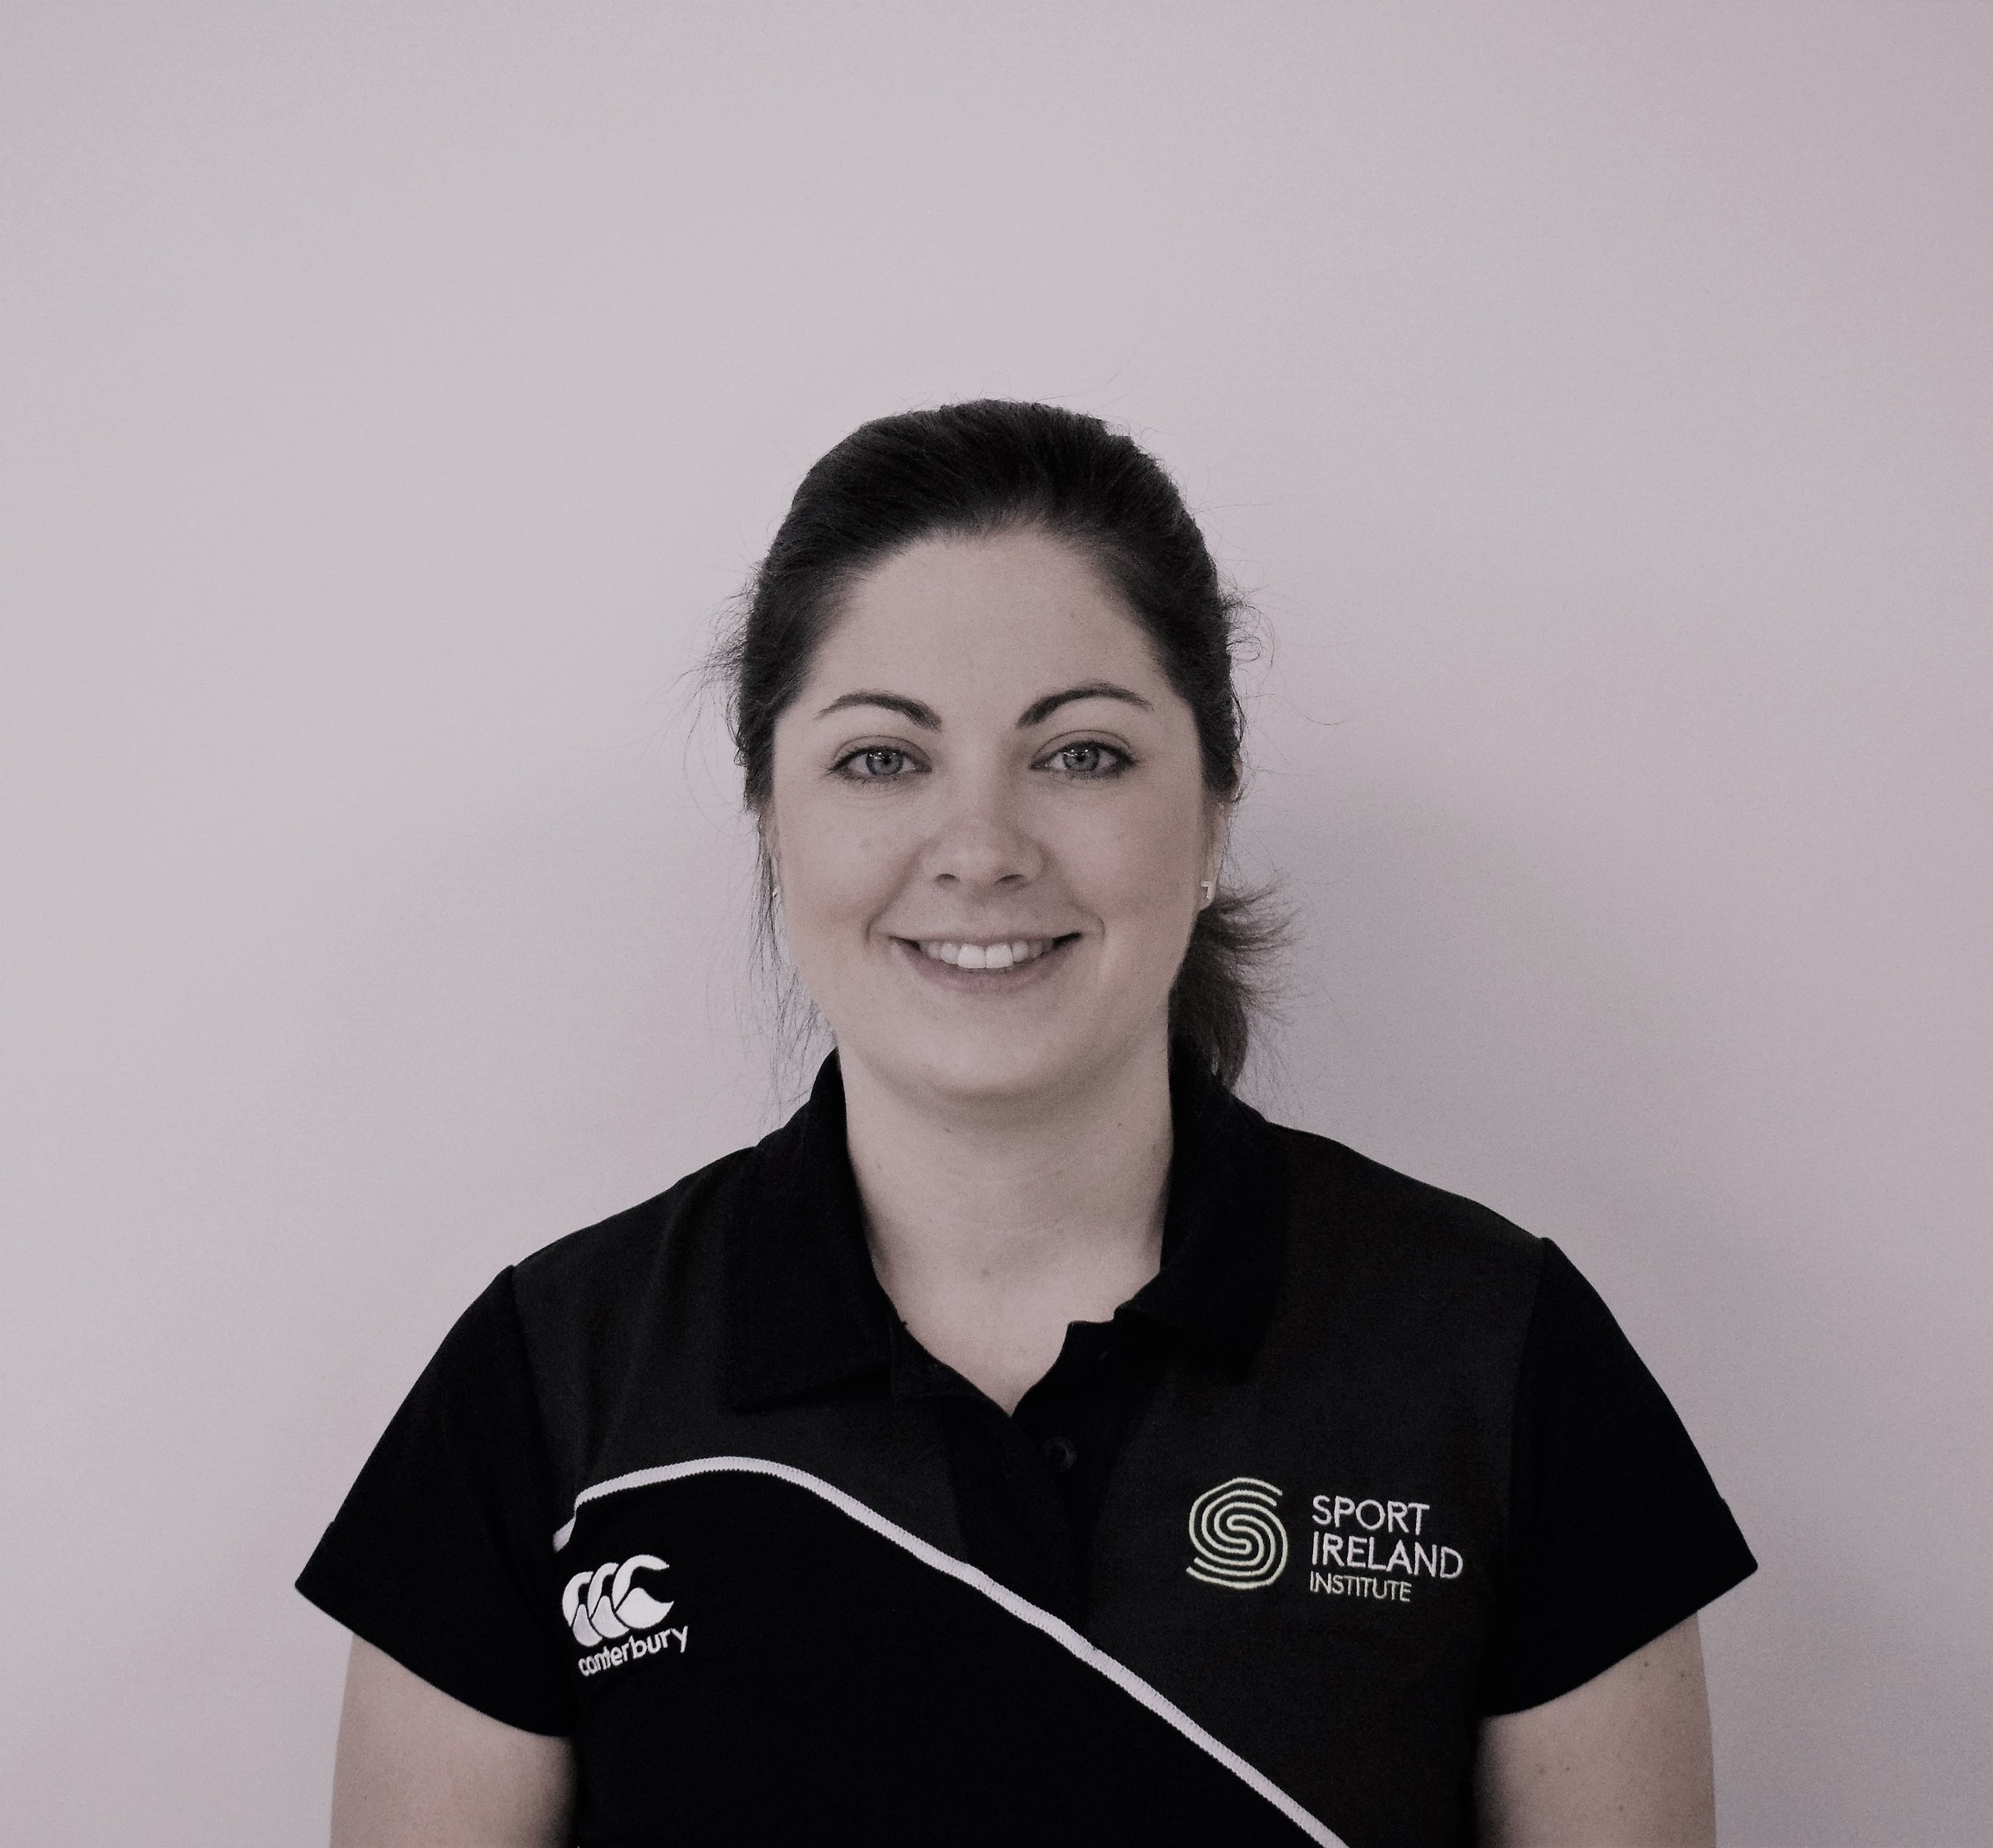 Julianne Ryan, Physiotherapist